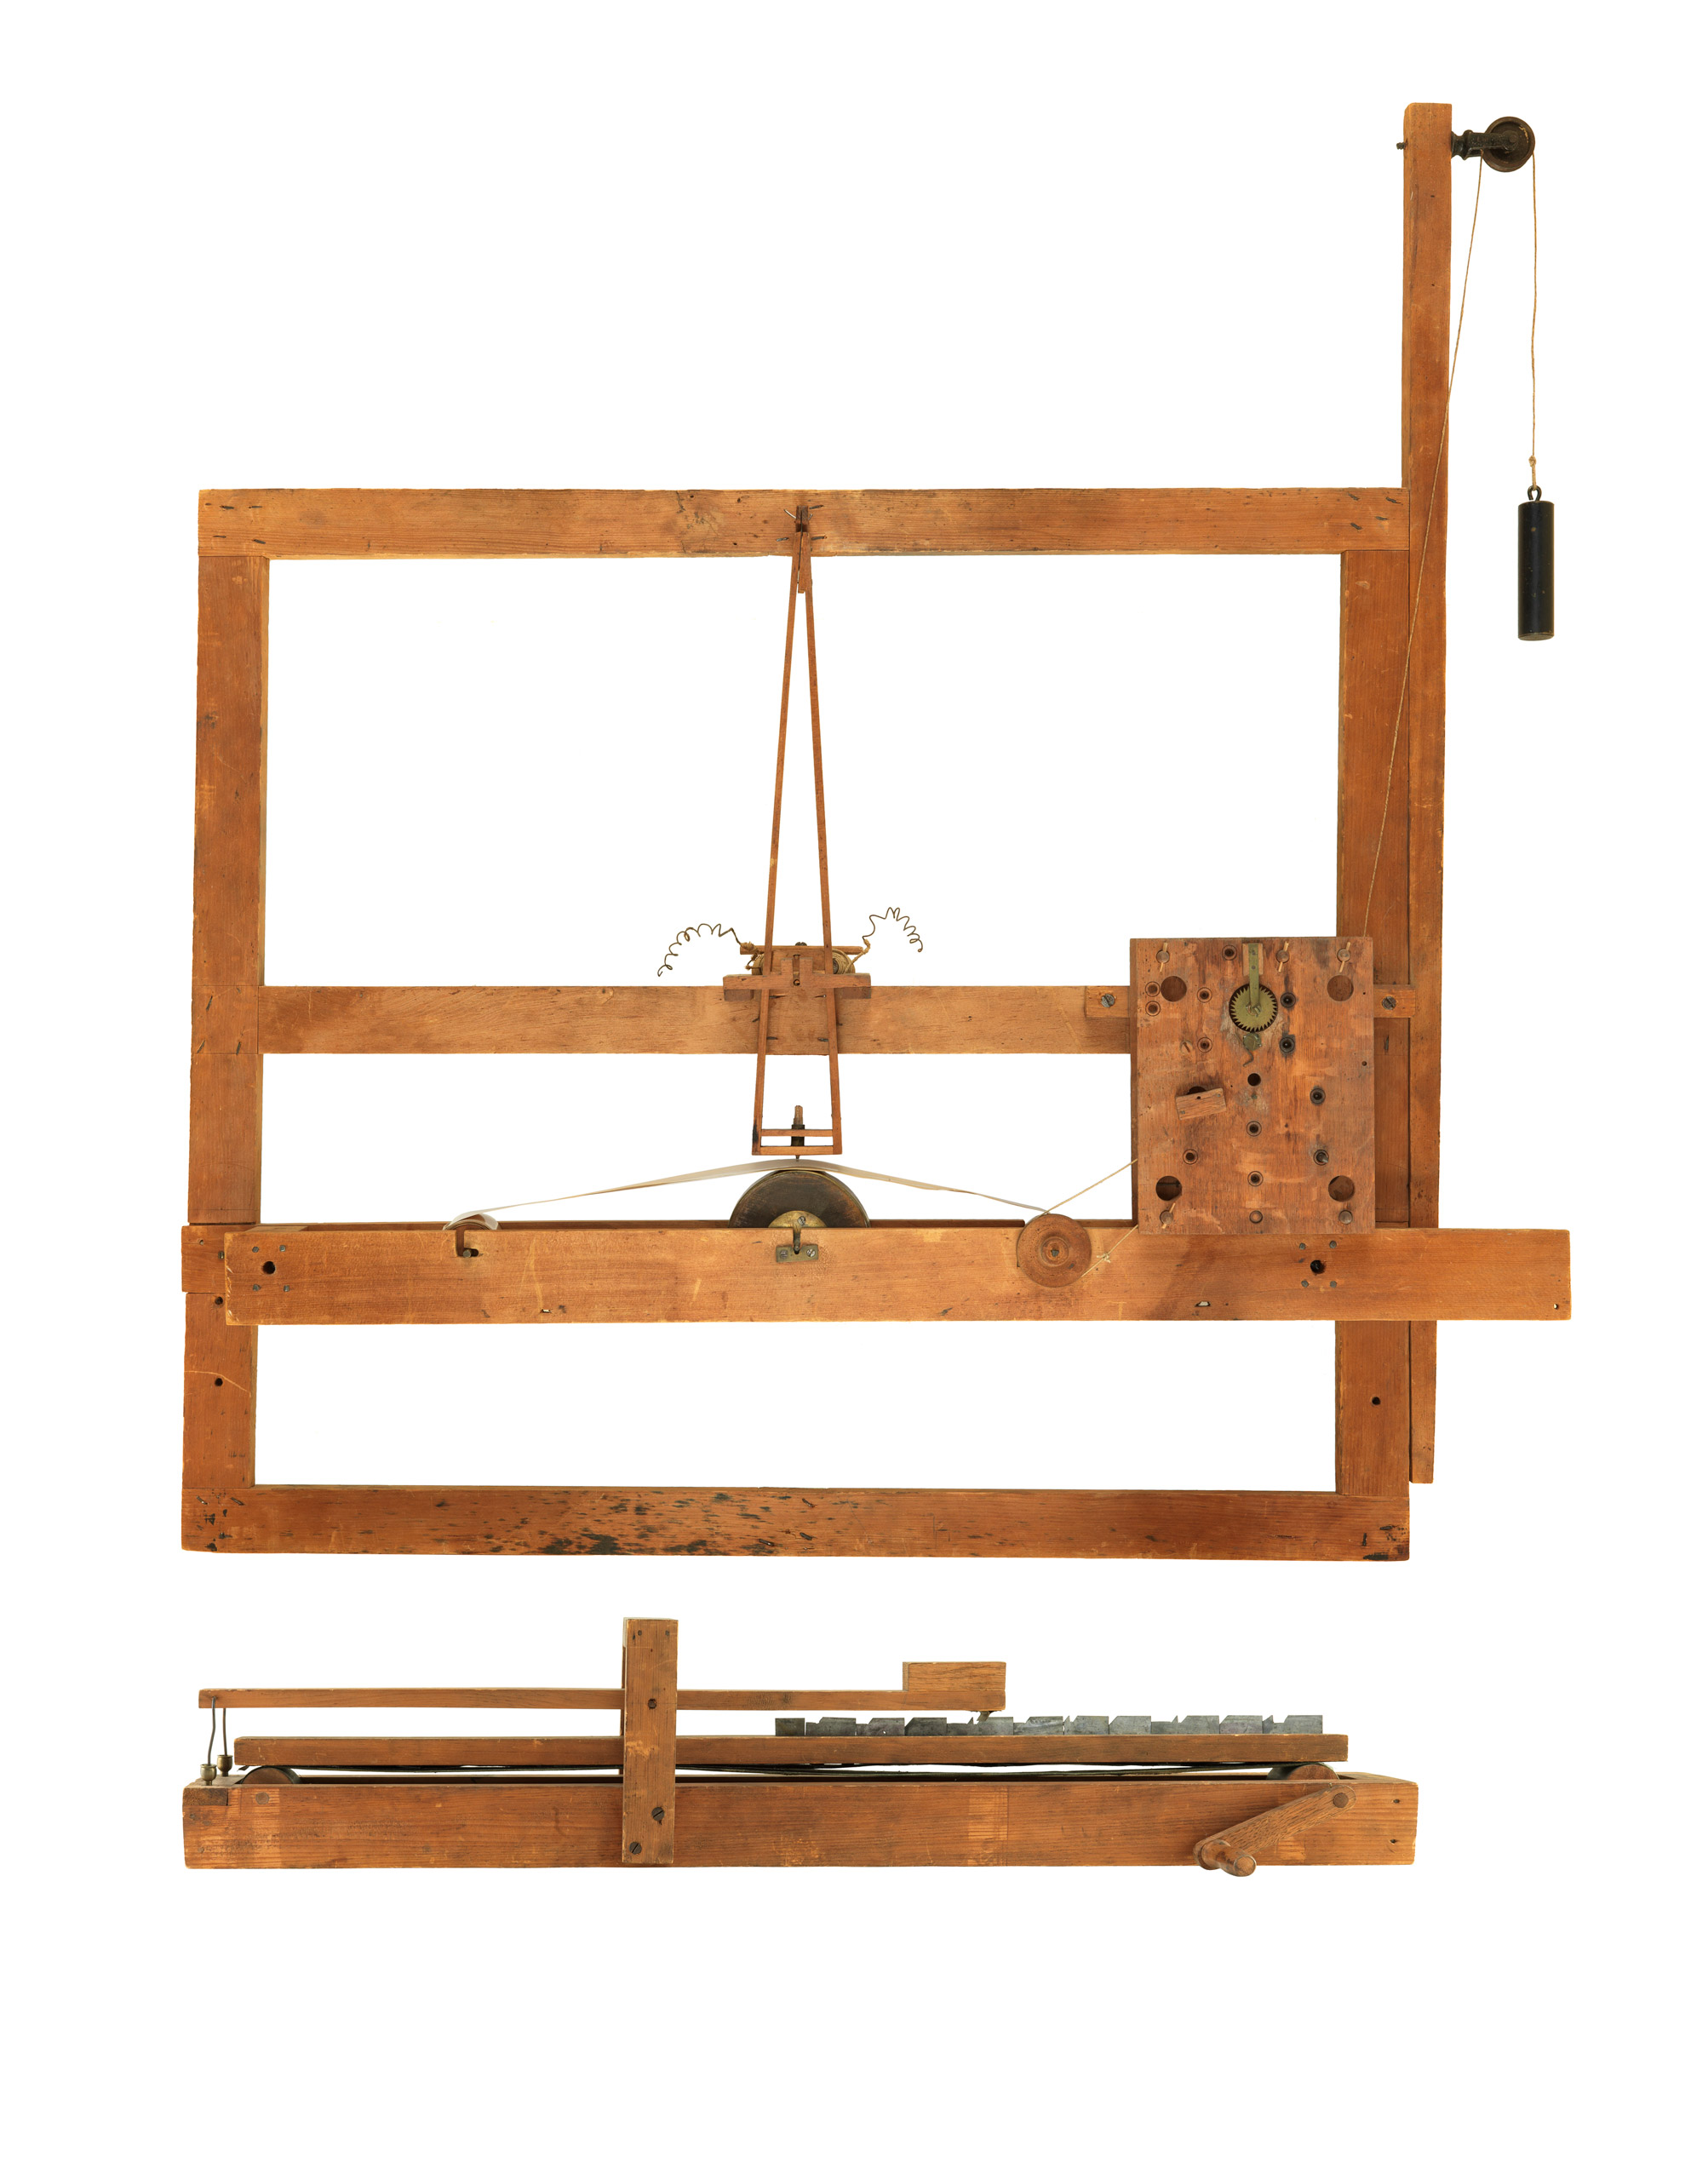 Telegraph, 1837: Samuel F. B. Morse, Prototype.                                                                      Samuel F. B. Morse converted an artist's canvas stretcher into a telegraph receiver that recorded a message as a wavy line on a strip of paper. His telegraph transmitter sent electric pulses representing letter and numbers that activated an electromagnet on the receiver.